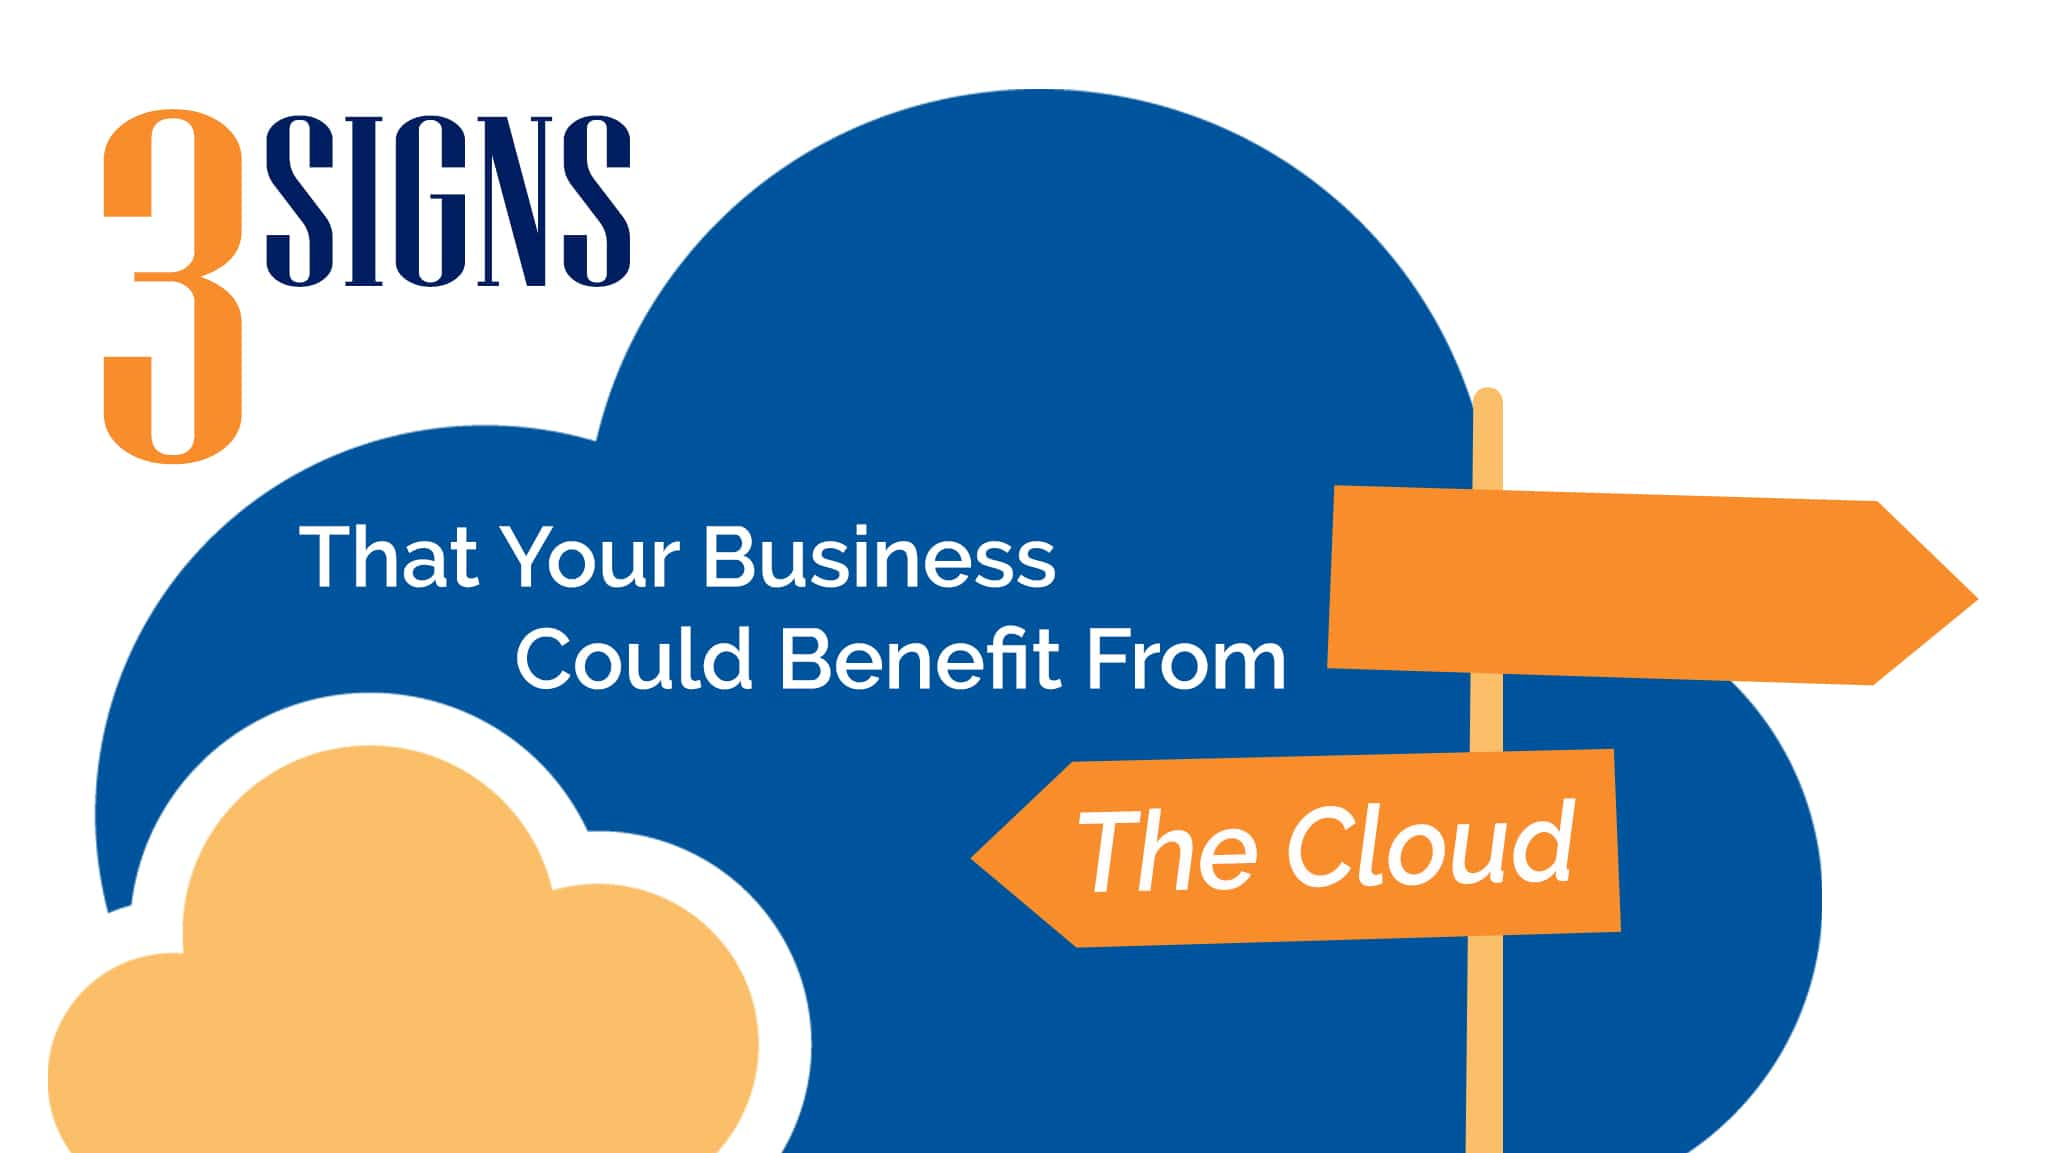 3 Signs That Your Business Could Benefit From The Cloud